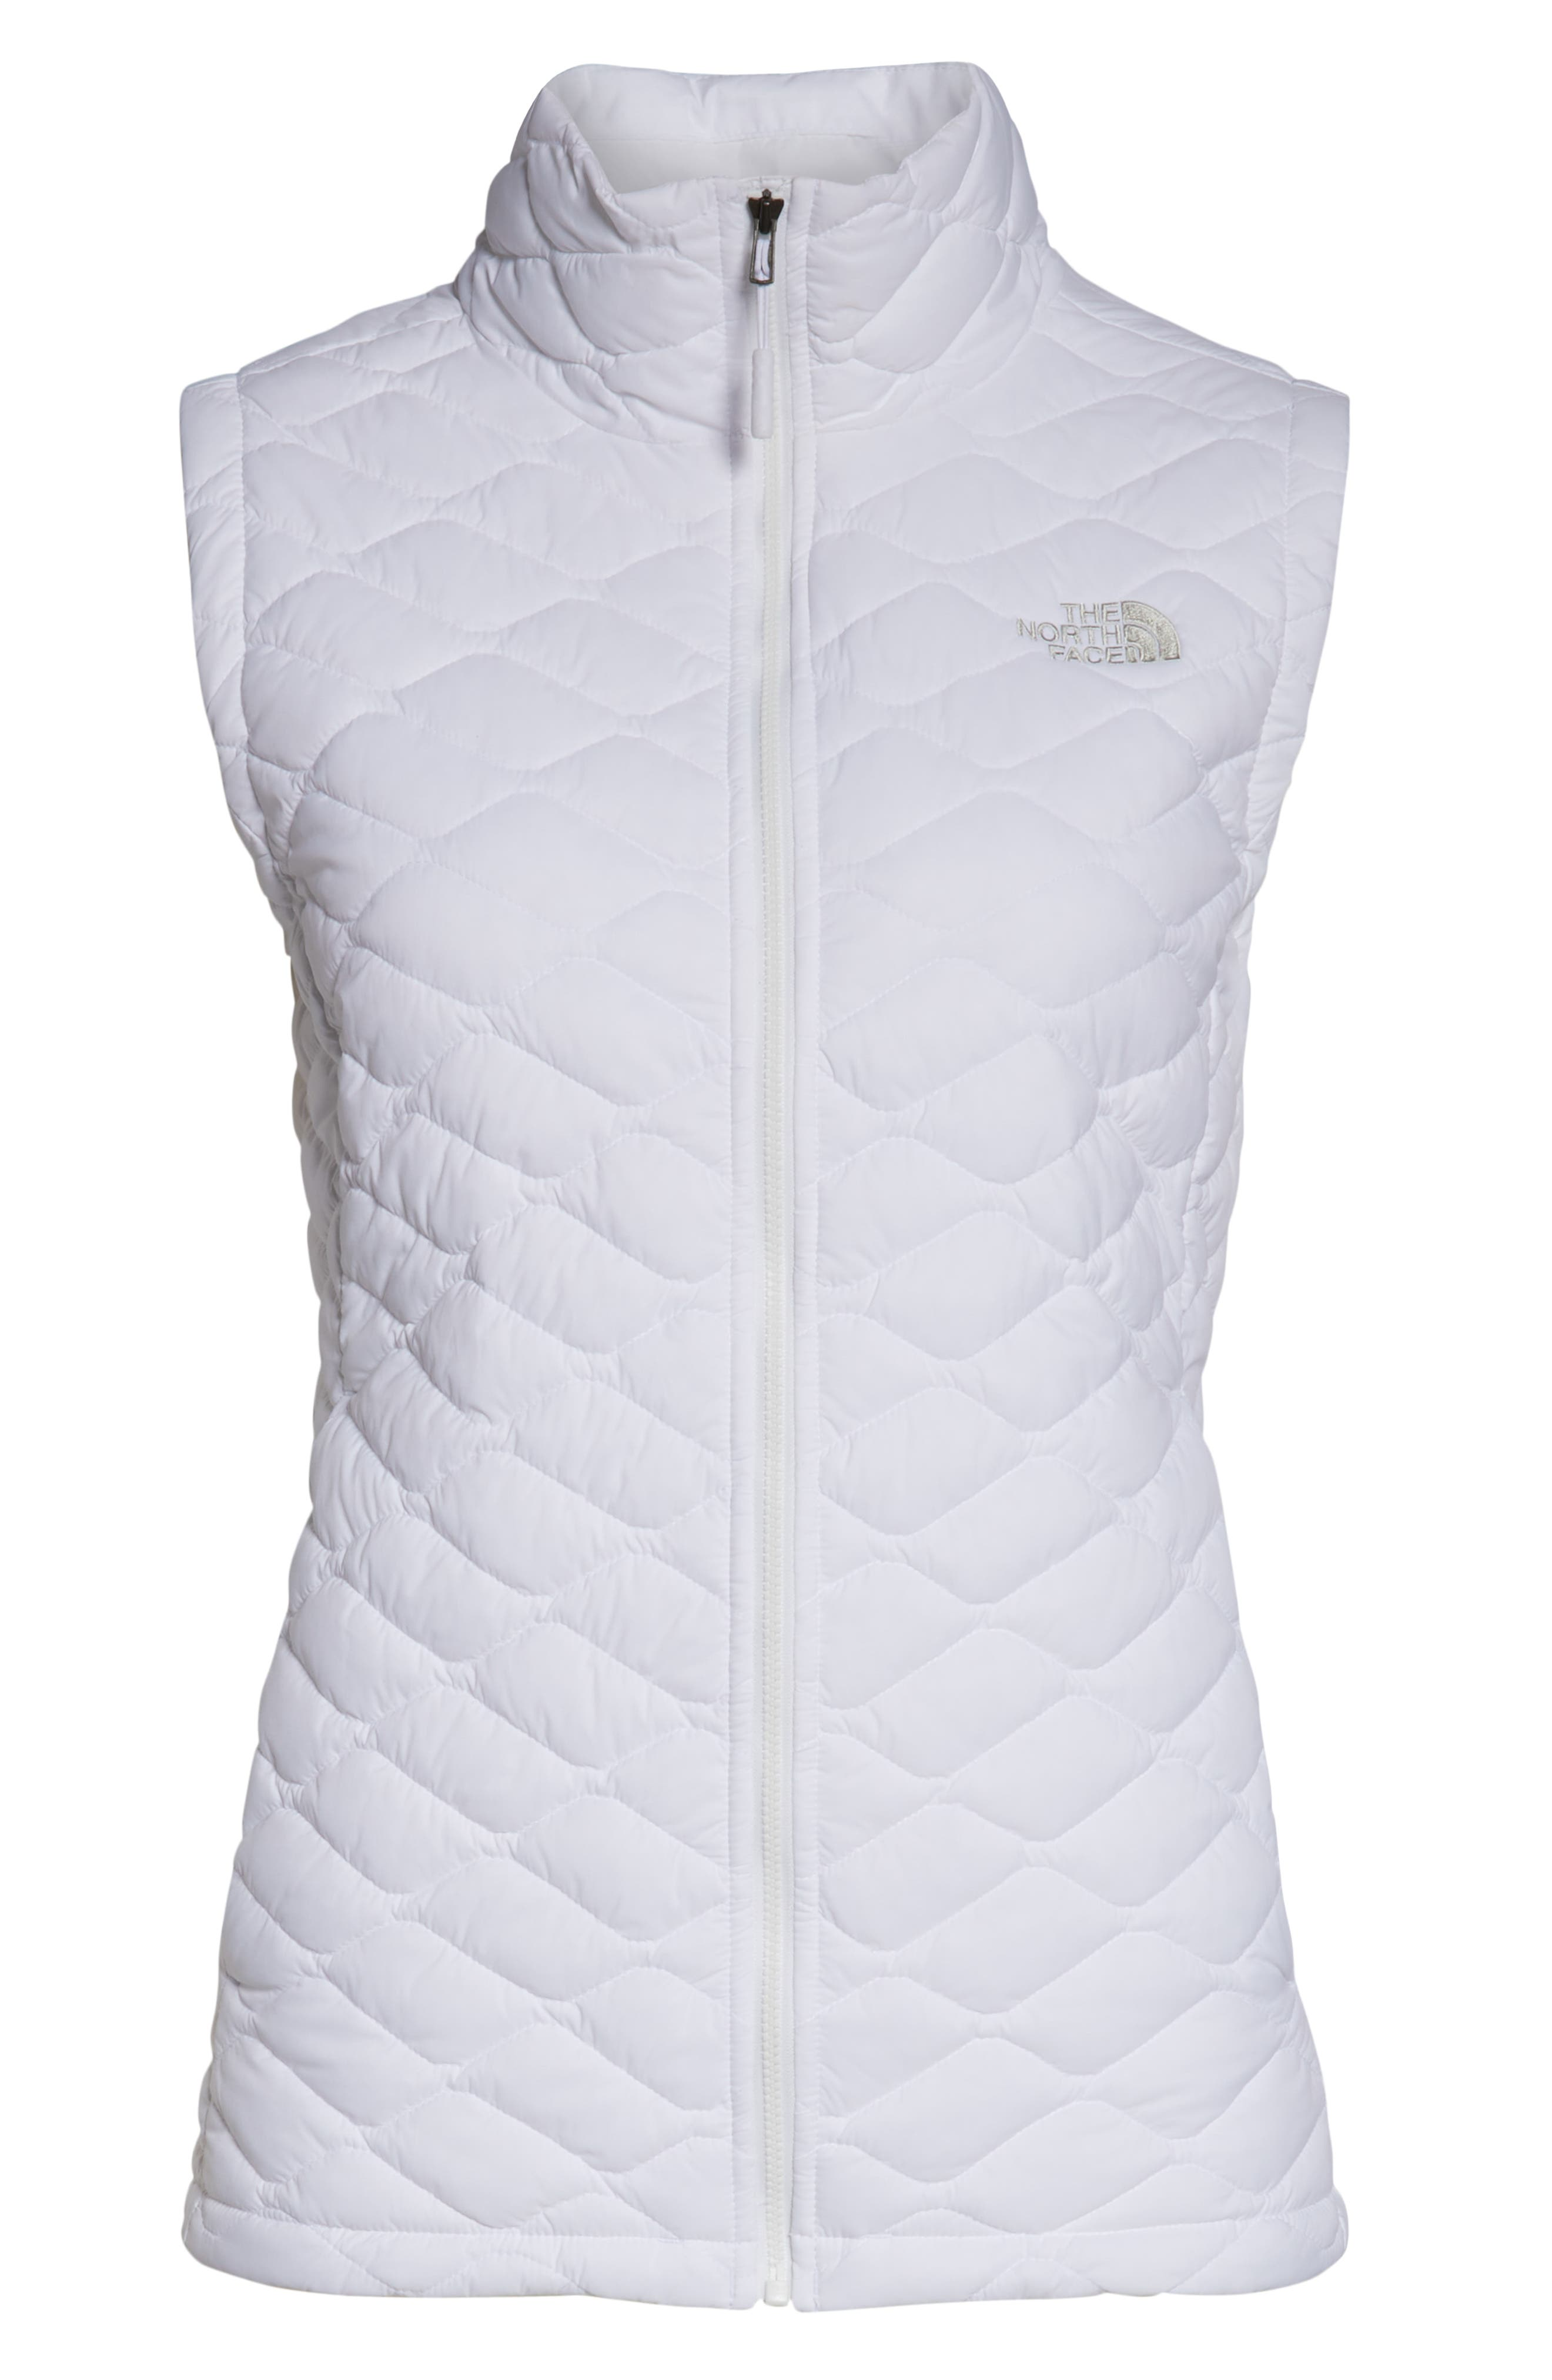 THE NORTH FACE, ThermoBall<sup>™</sup> PrimaLoft<sup>®</sup> Vest, Alternate thumbnail 6, color, TNF WHITE MATTE